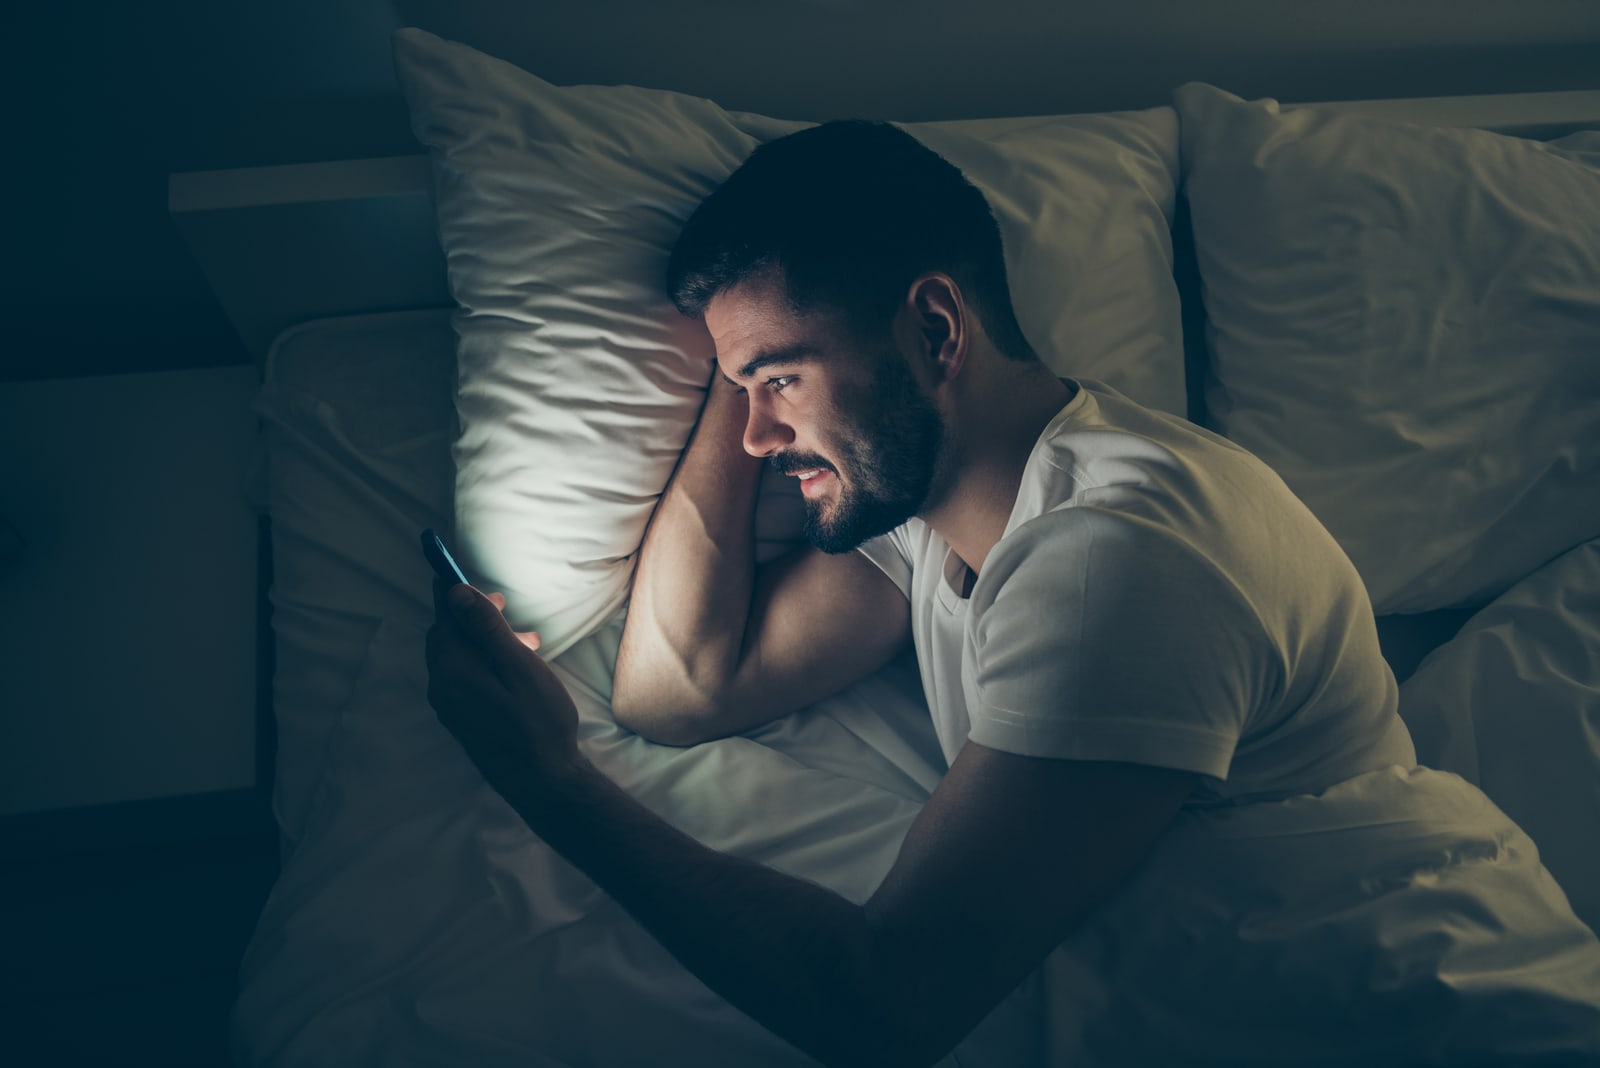 a smiling man in a white T-shirt in the evening lies in bed and watches something on his smartphone